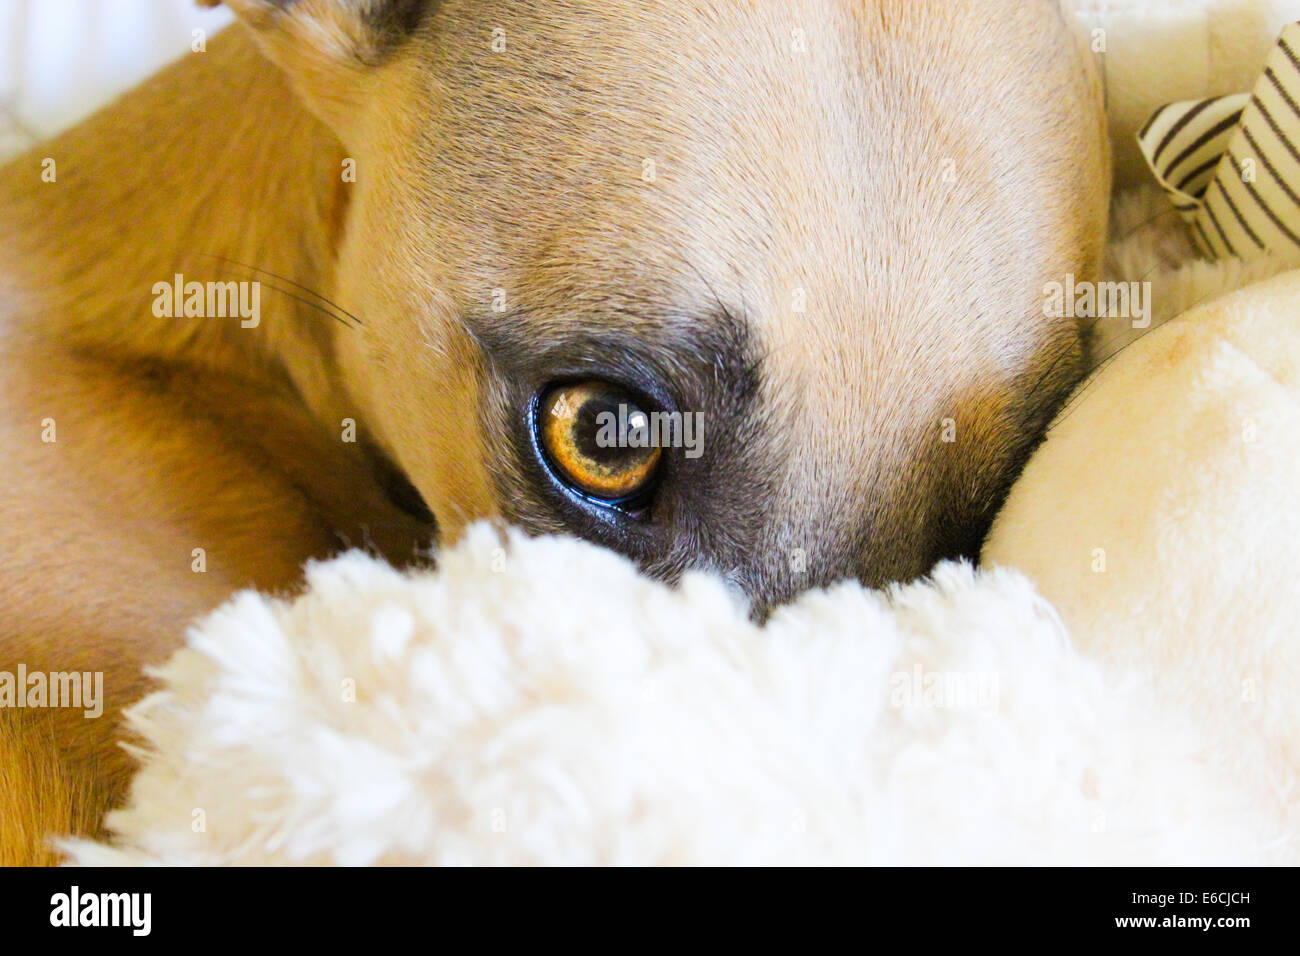 Beautiful detailed close up of a whippets face partly buried beneath comfy blankets - Stock Image